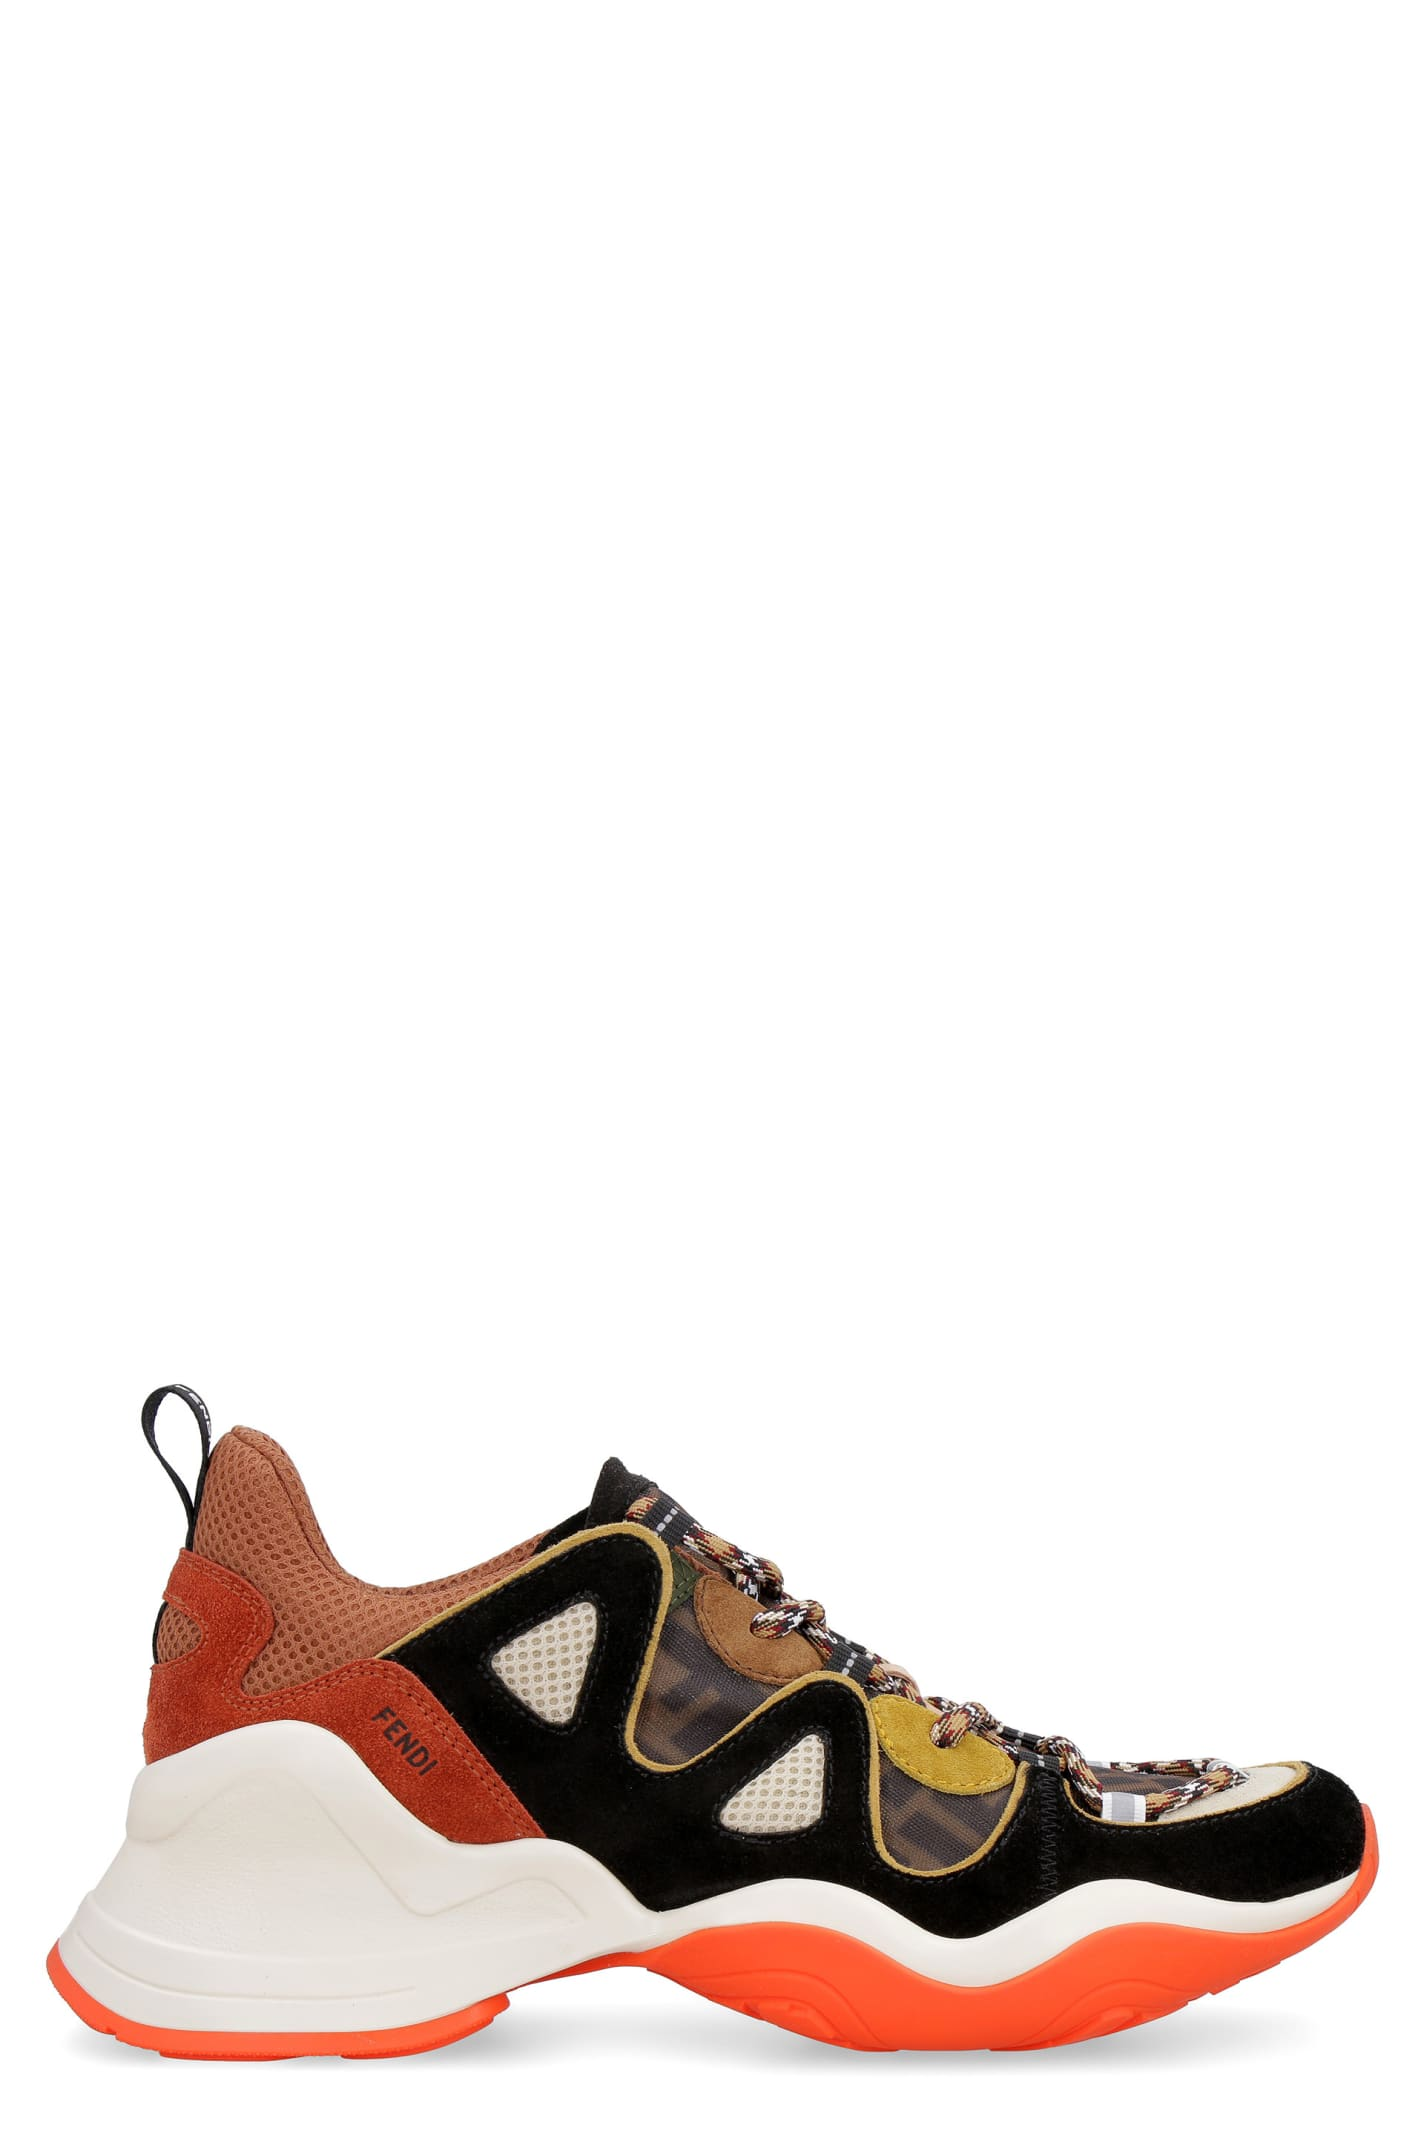 Fendi Techno Fabric And Suede Sneakers